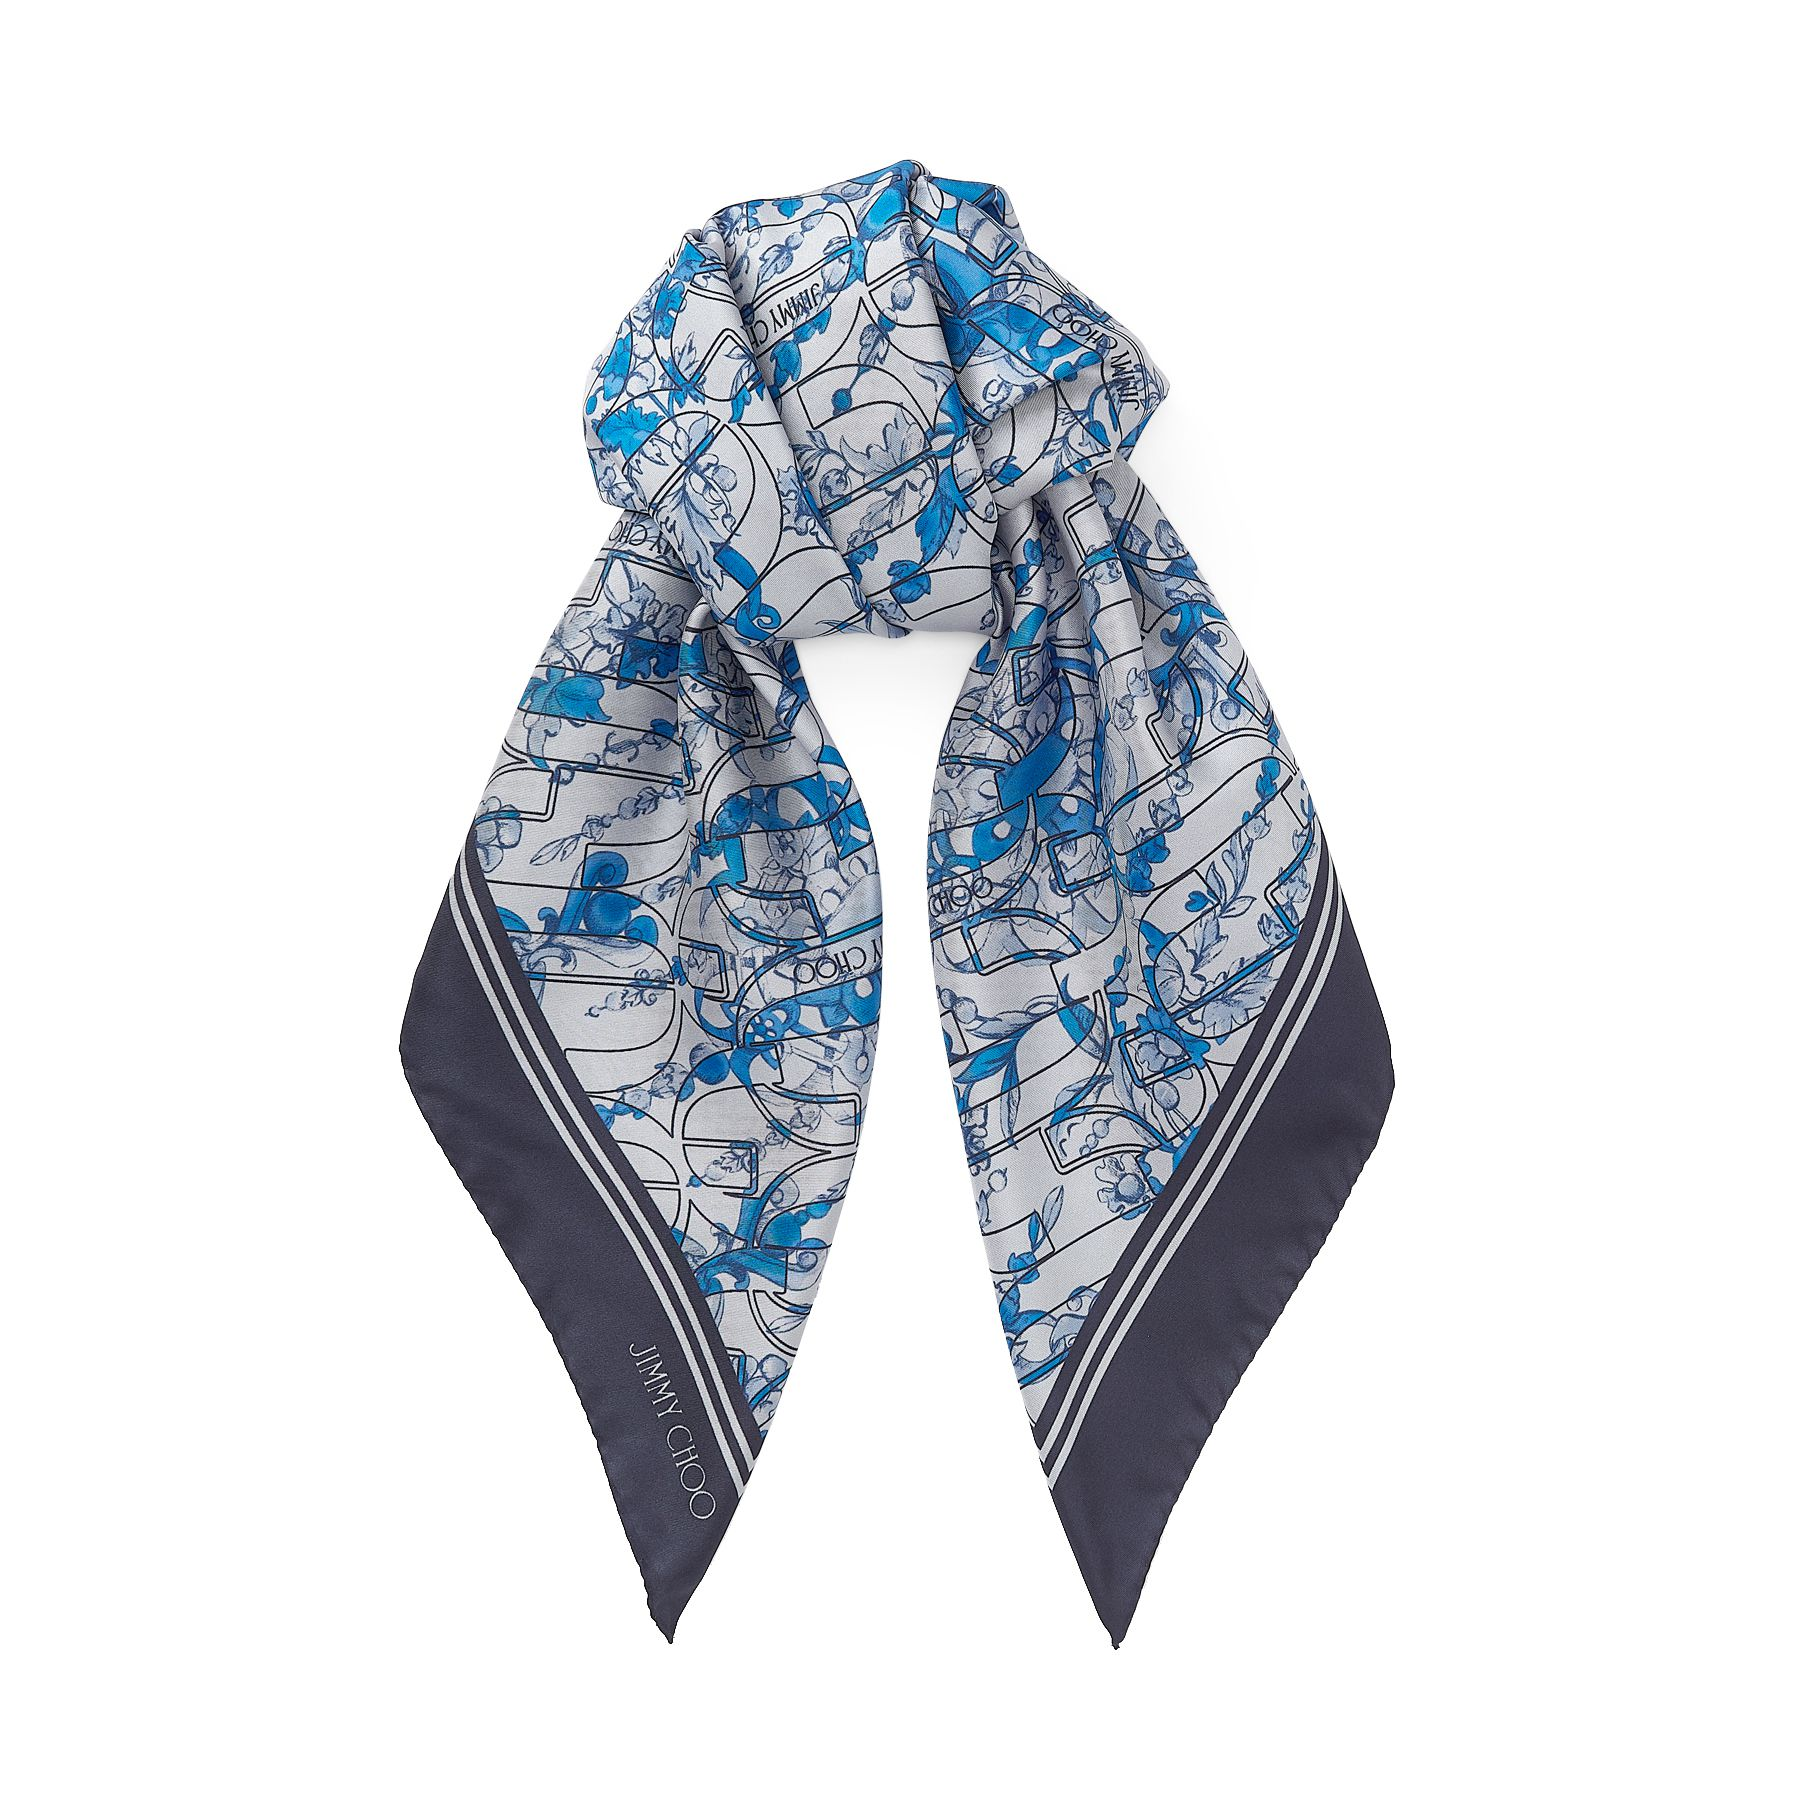 In pure silk, our olympic ELLA printed twill foulard is ideal for elegantly accessorising endless looks. Crafted in Italy, it\\\'s made from 100 per cent soft silk and printed with our Autumn Winter 2020 seasonal print.